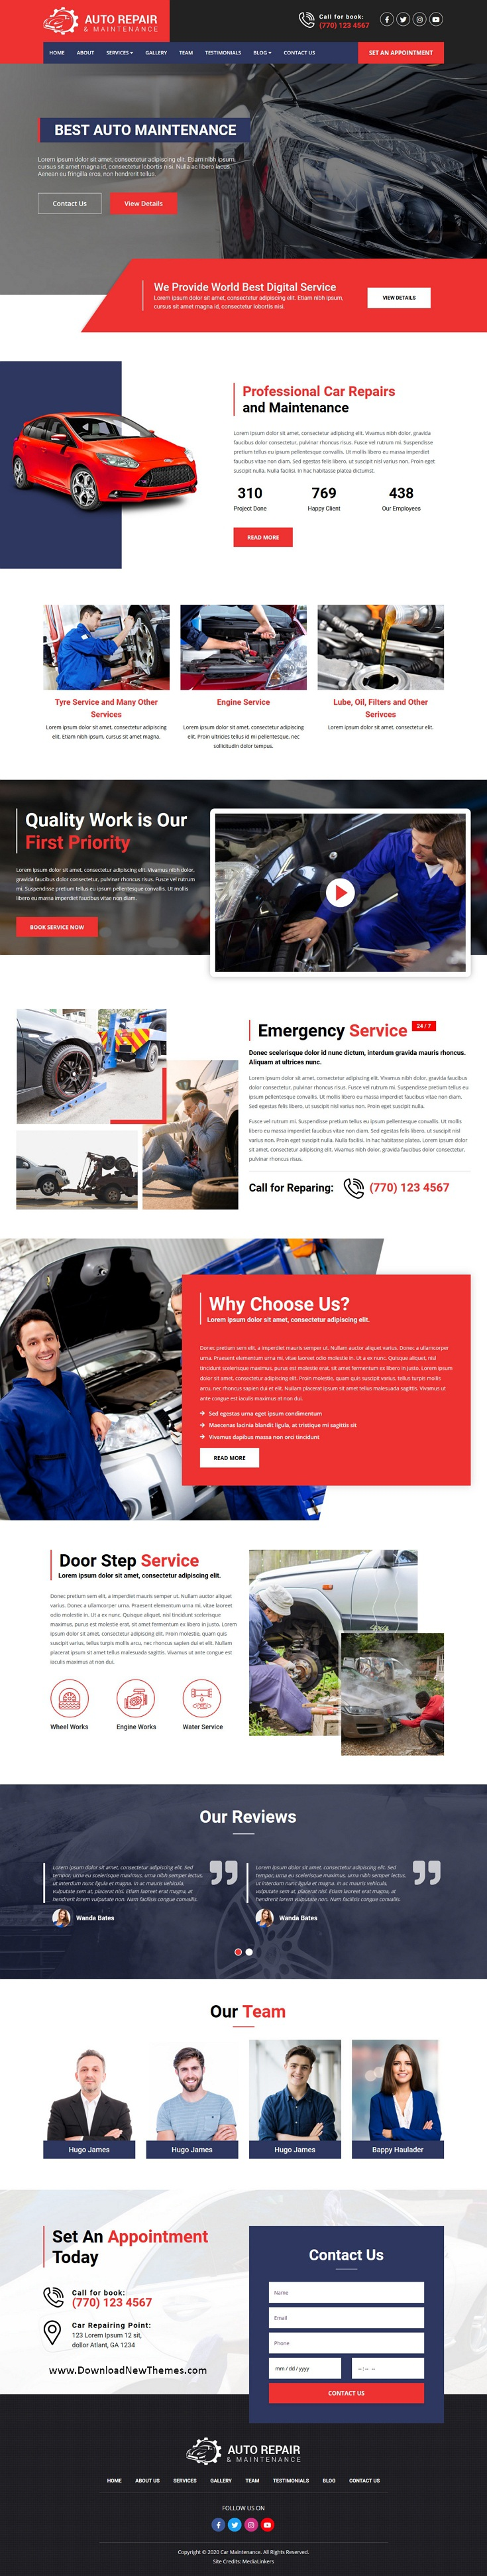 Auto Repair Responsive Website Template